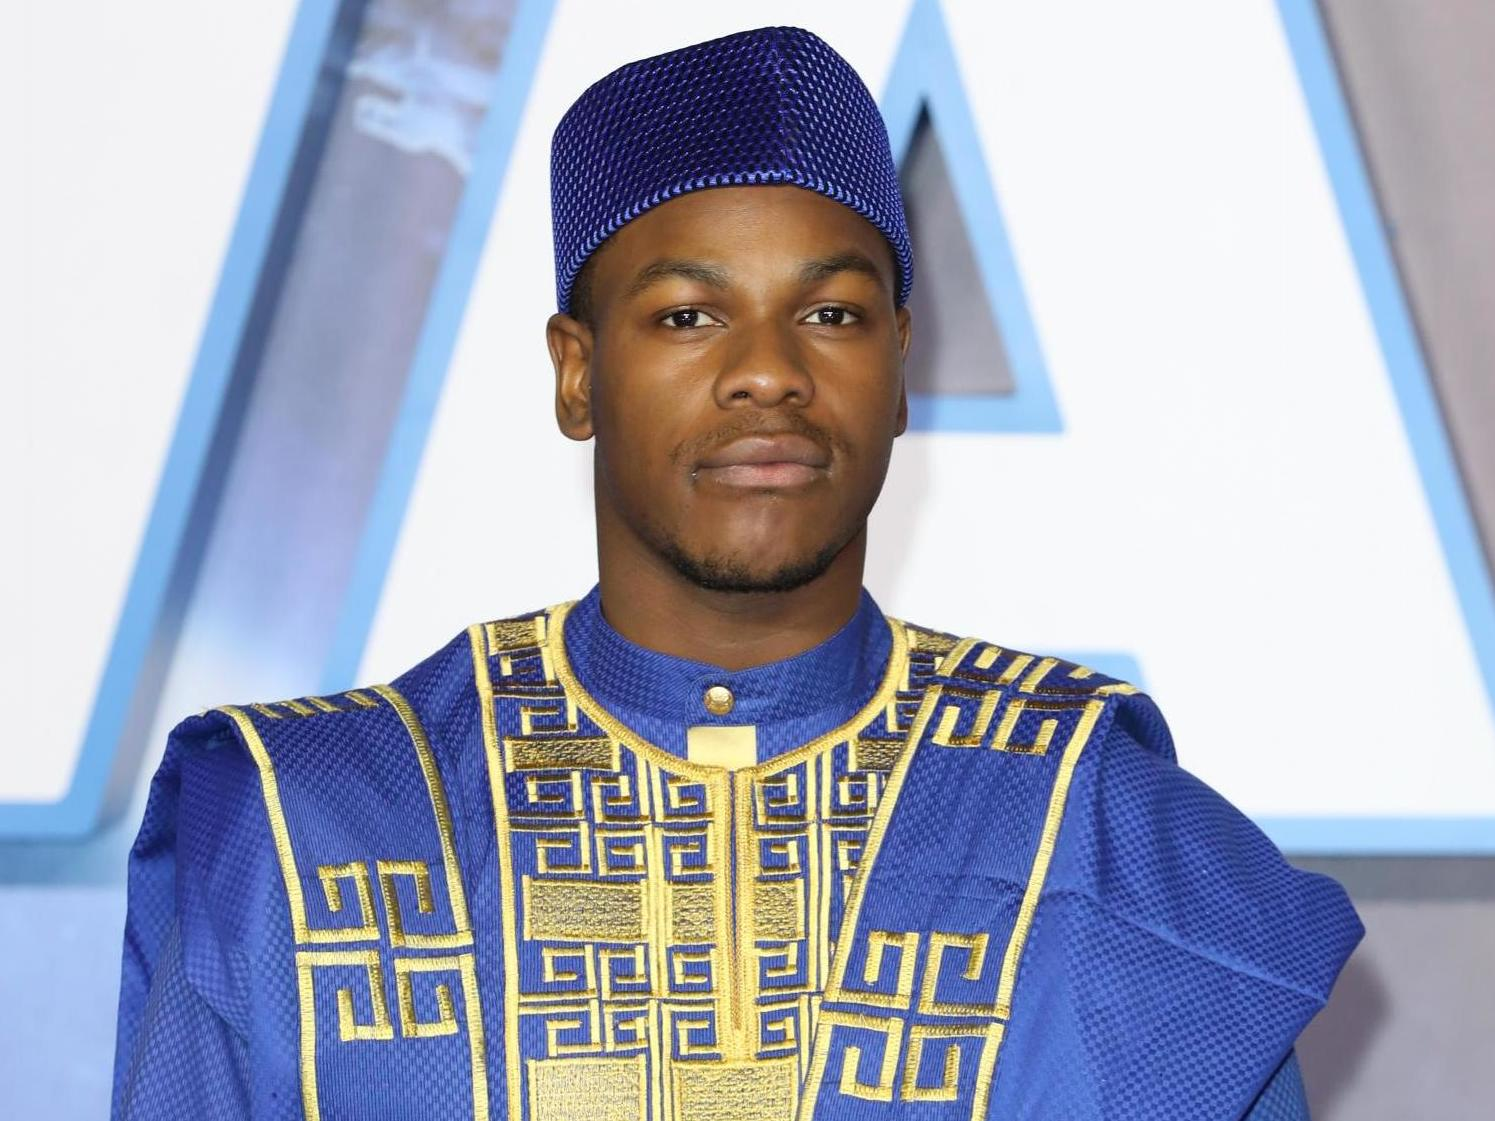 Star Wars: John Boyega wears traditional dress at Rise of Skywalker premiere